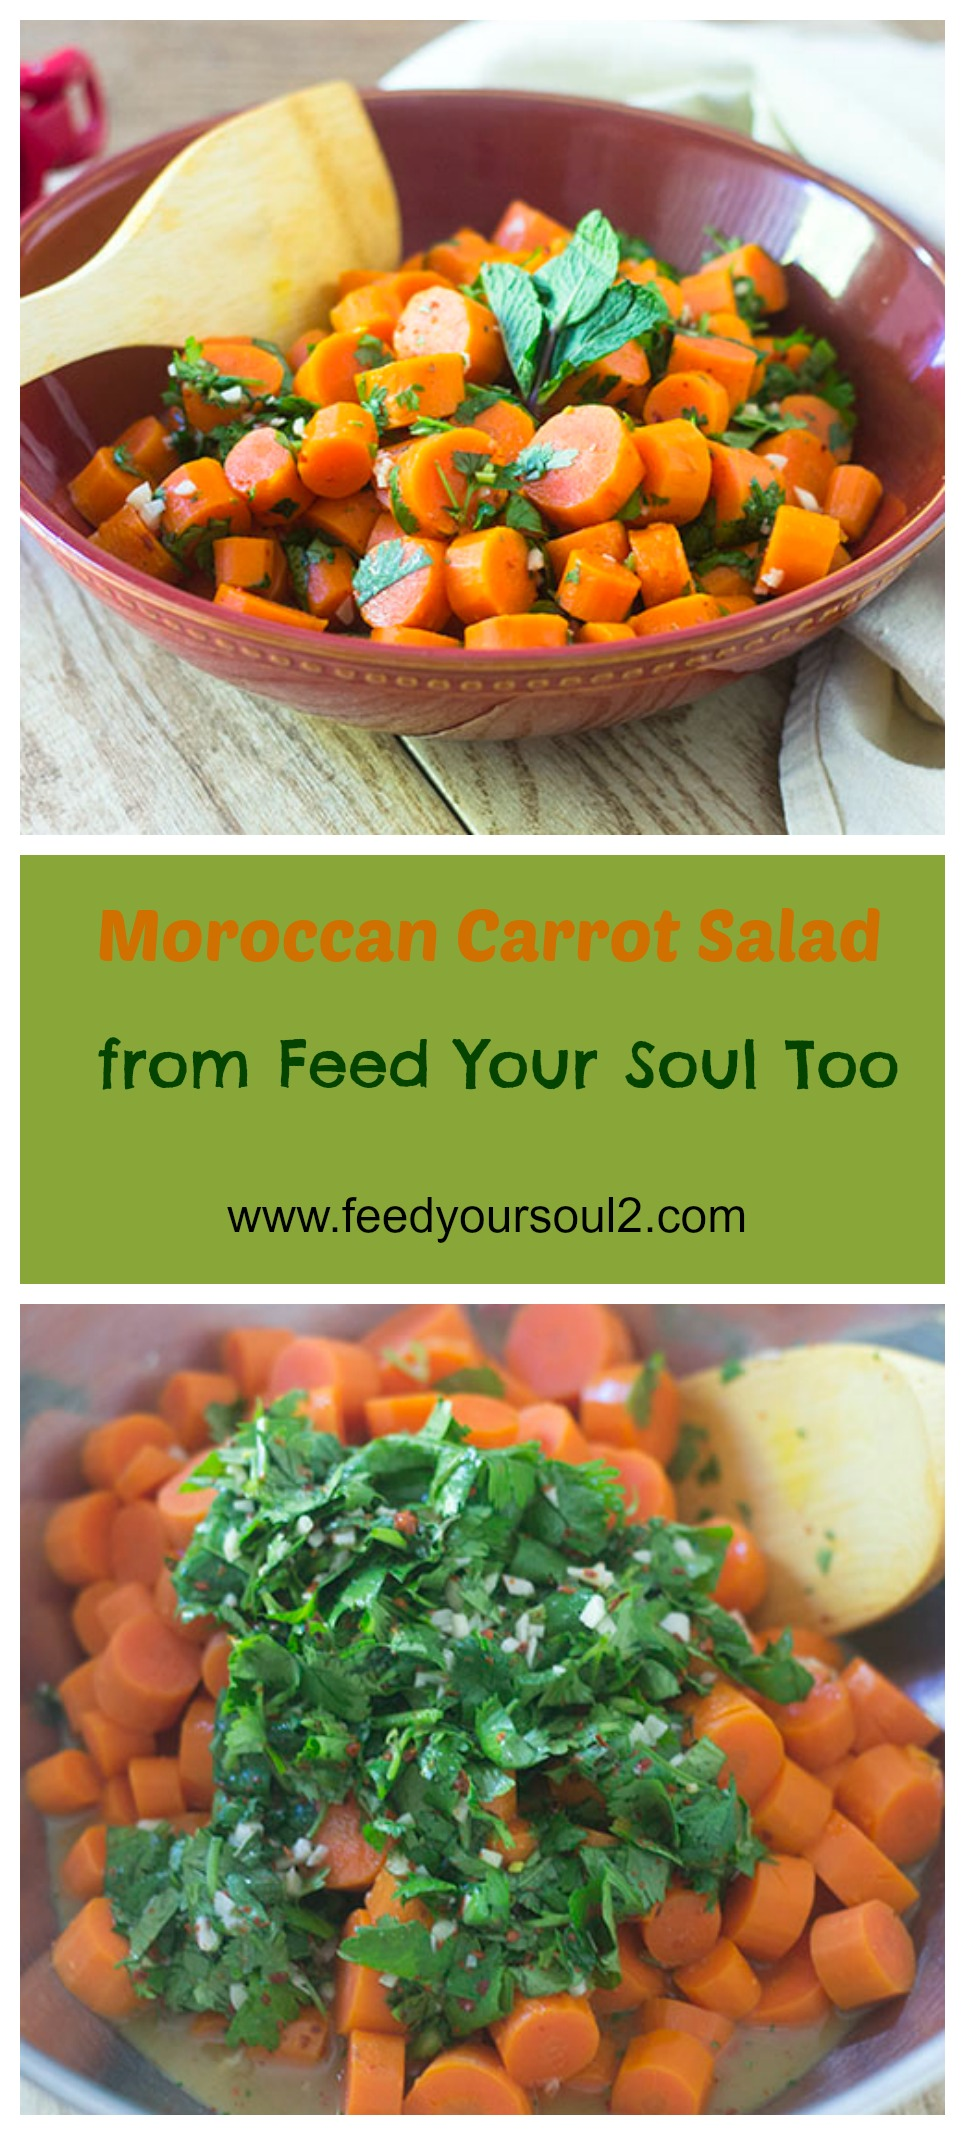 Moroccan Carrot Salad #vegan #salad #carrots | feedyoursoul2.com